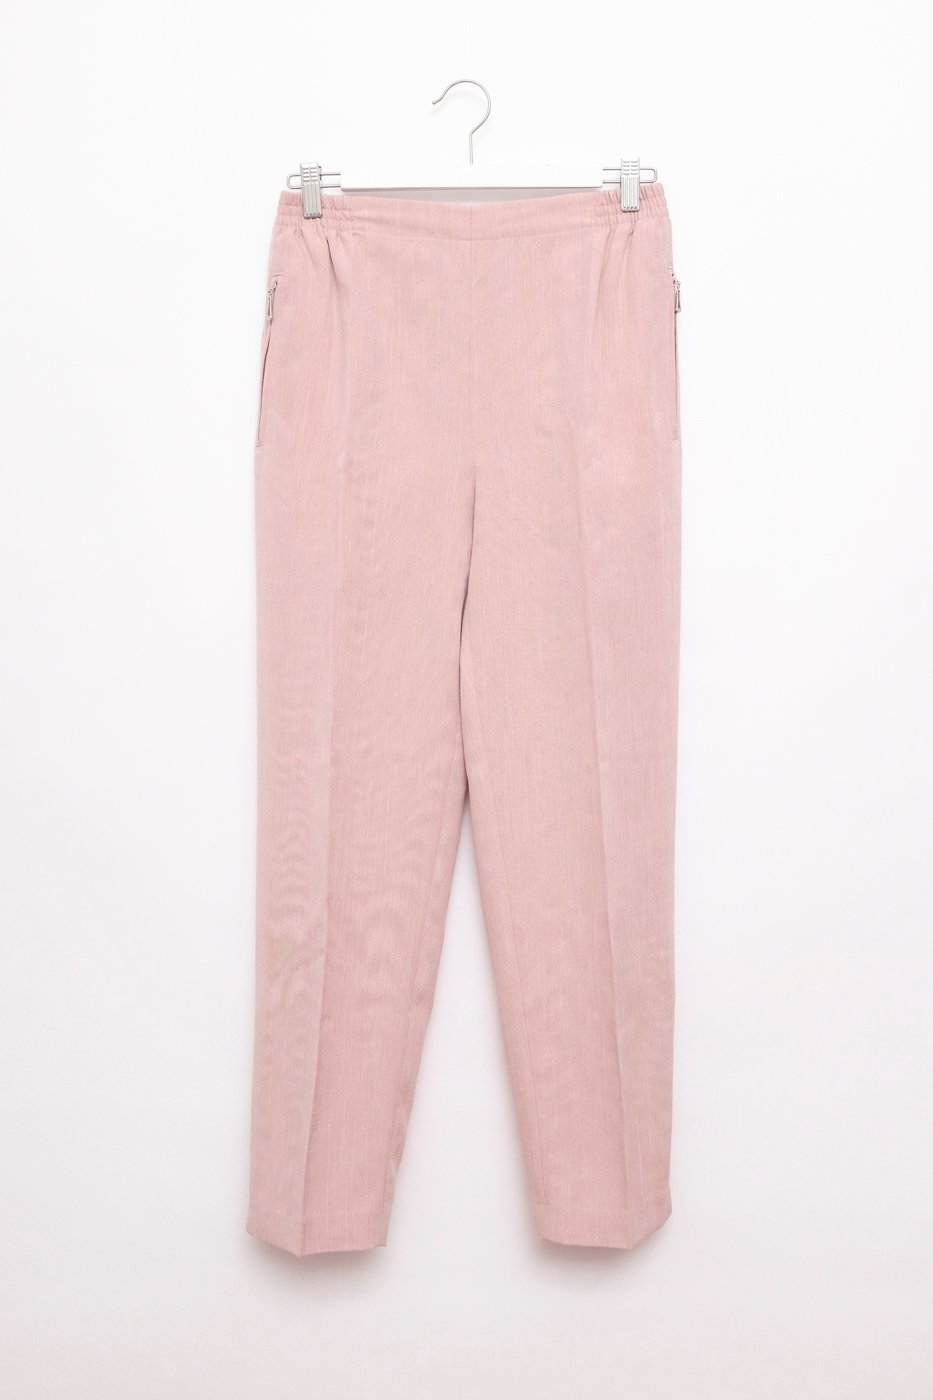 0418_ROSE HIGH WAISTED VINTAGE TROUSERS